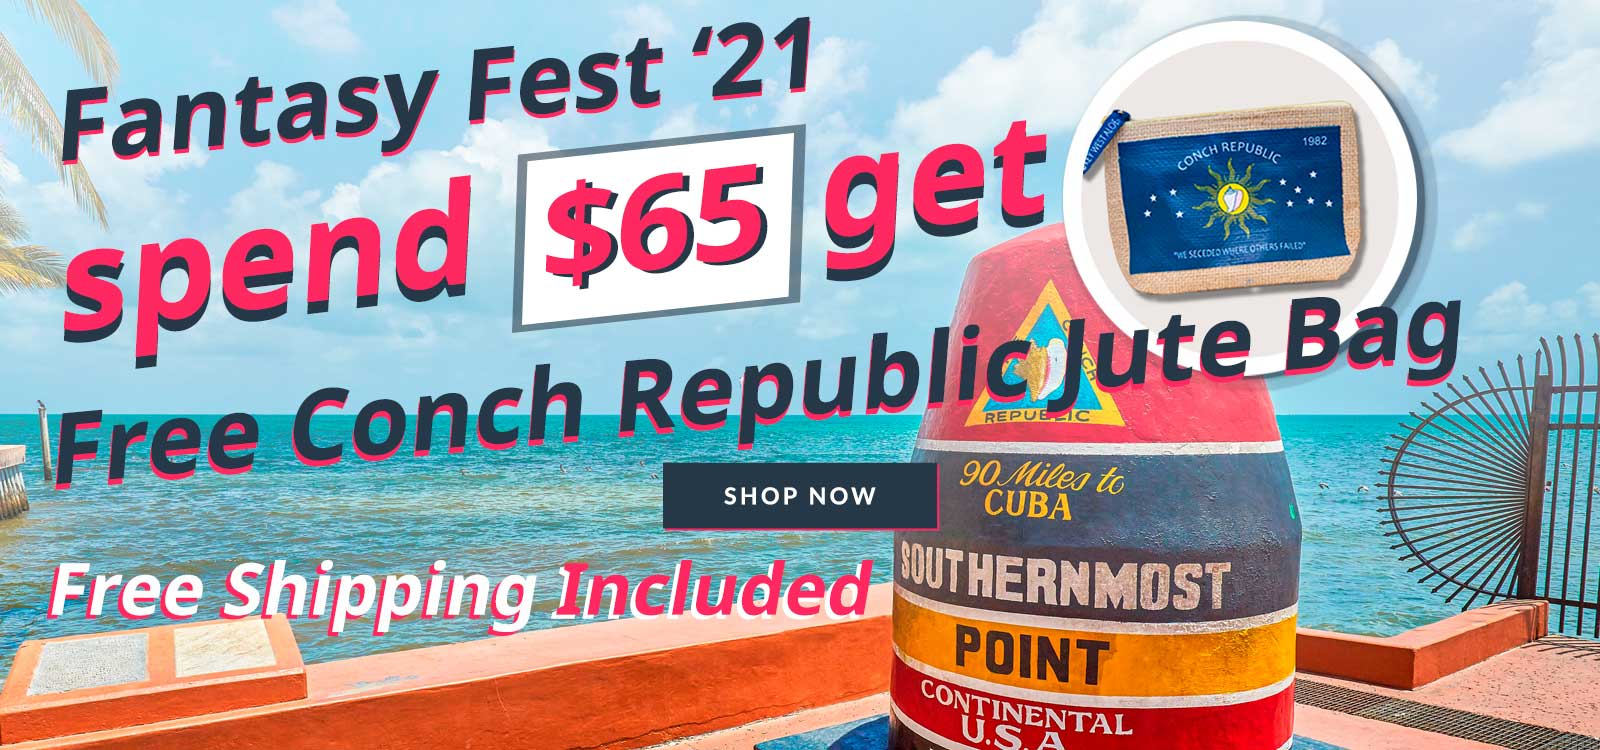 Free Conch Republic Jute Bag with $65